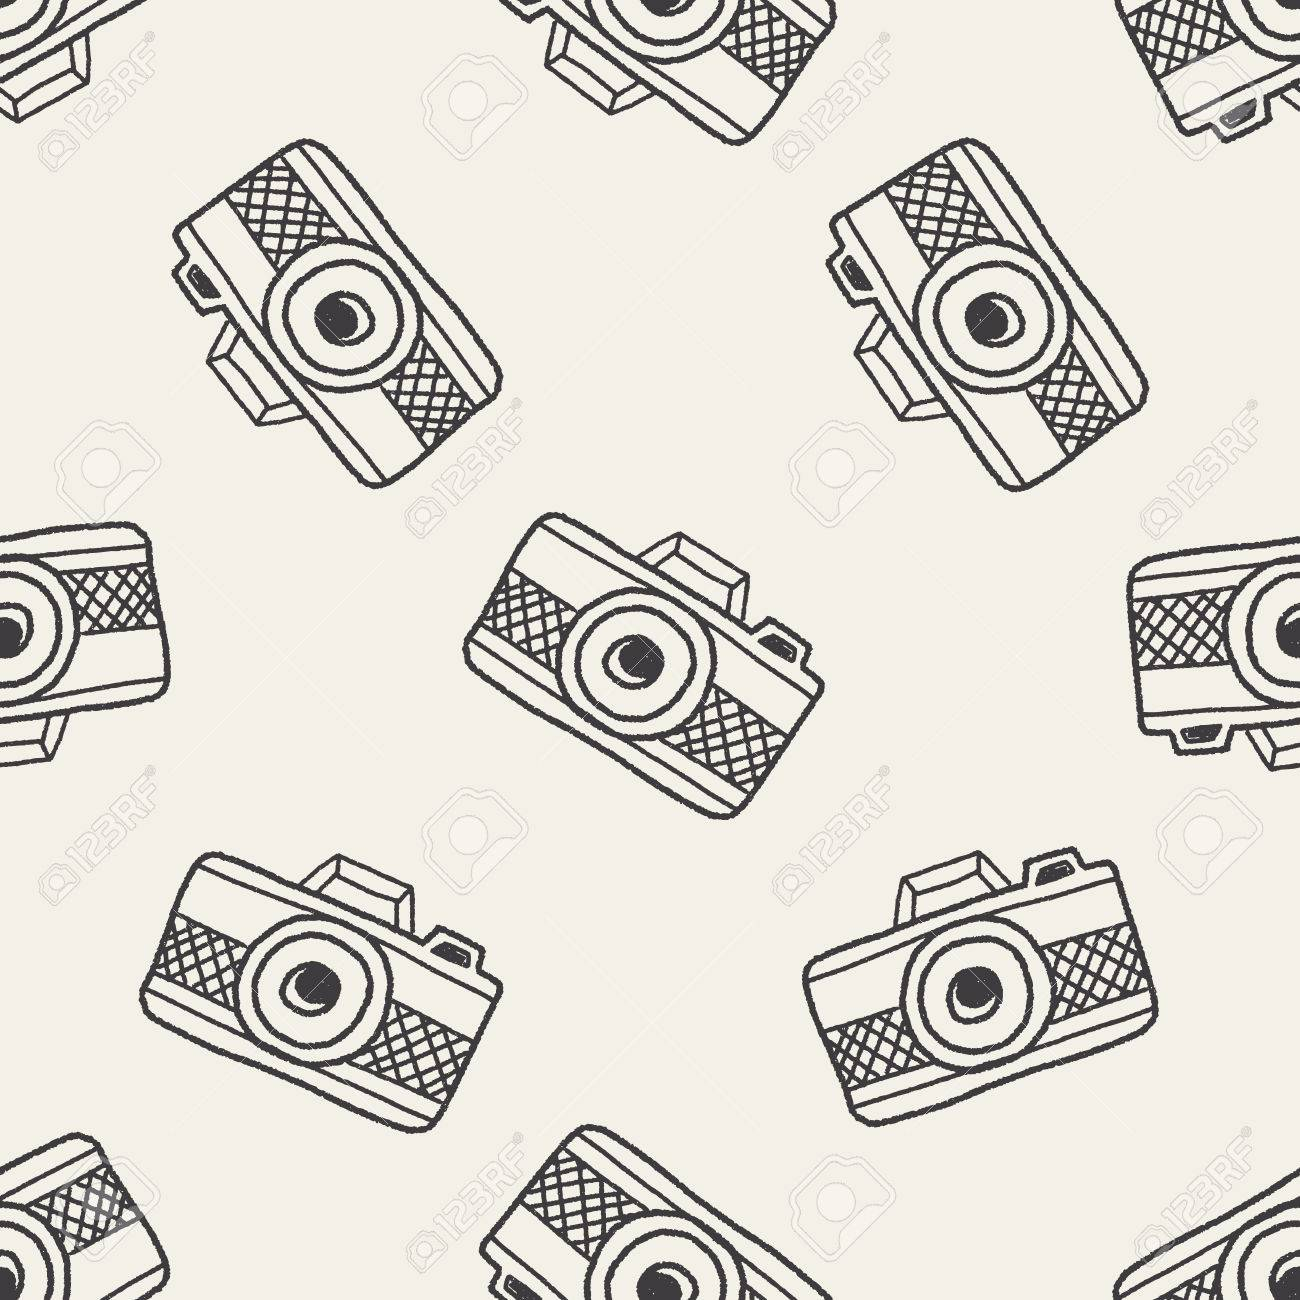 Doodle Camera Seamless Pattern Background Stock Vector